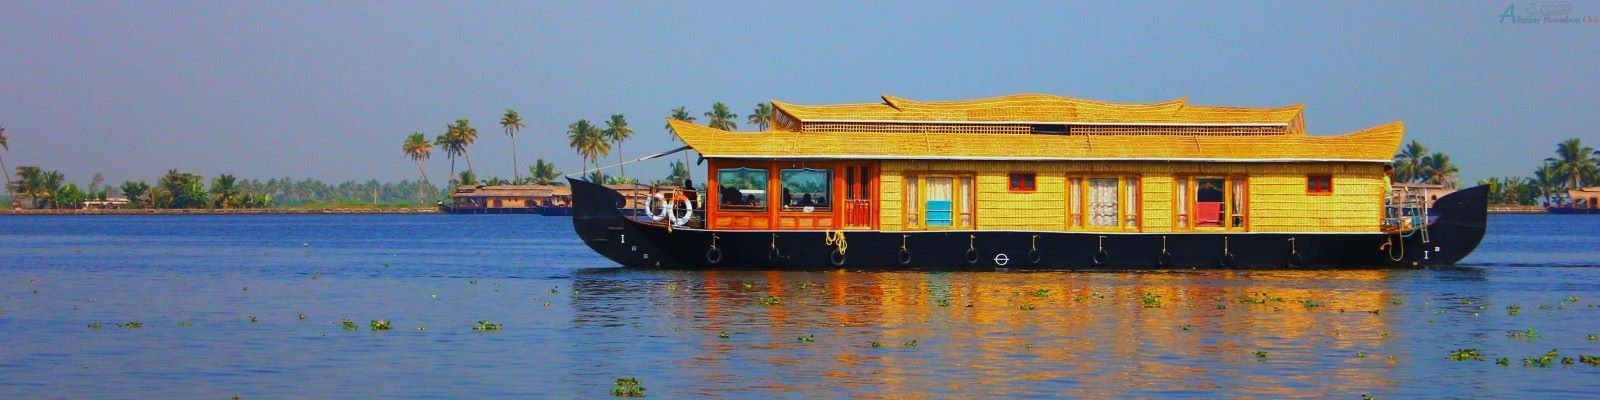 alleppey houseboat photo